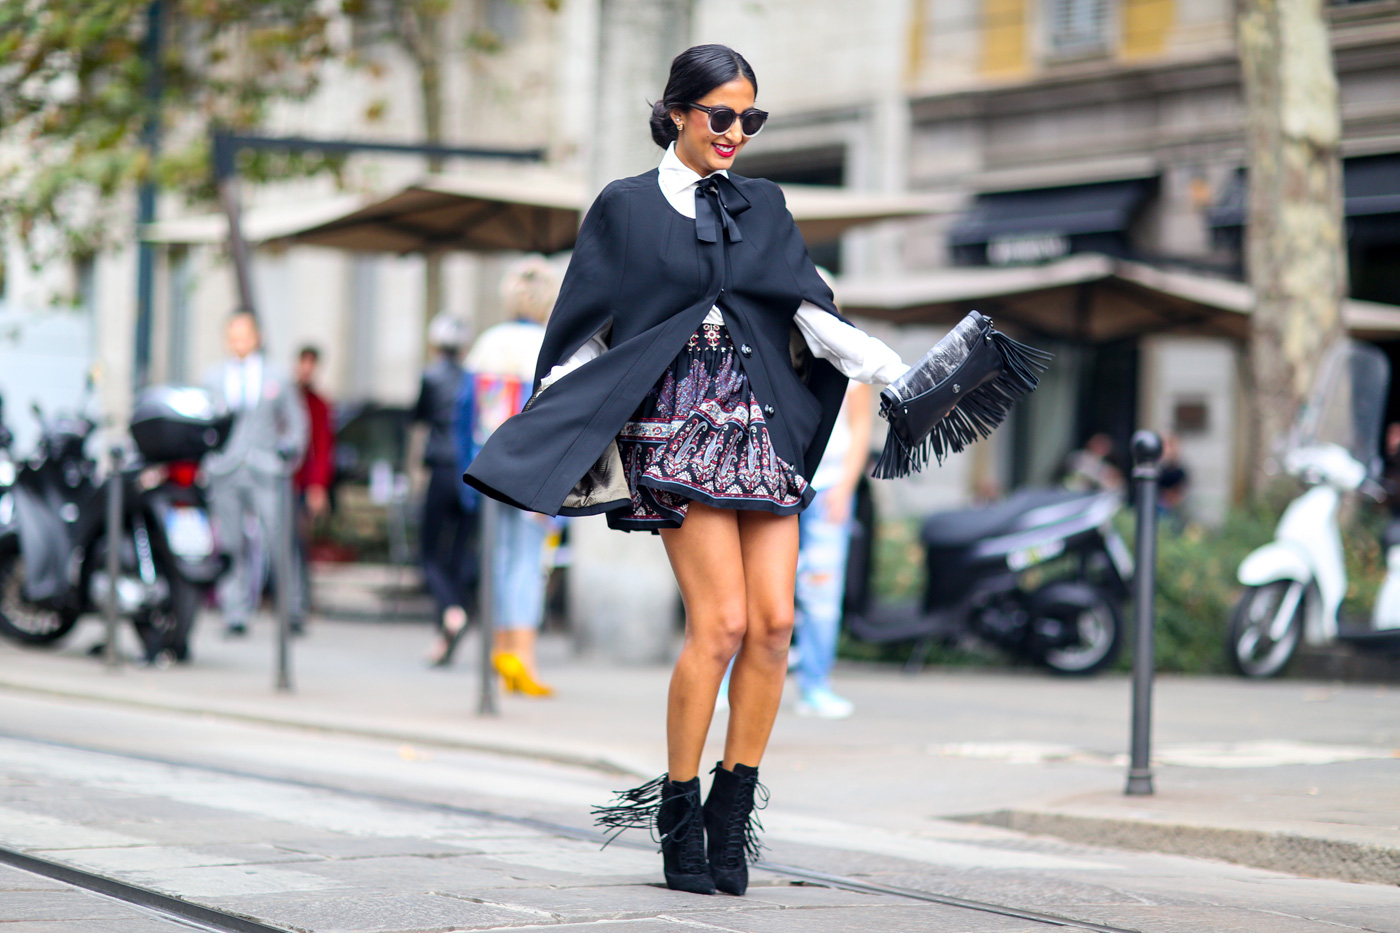 Milan Fashion Week Streetstyle